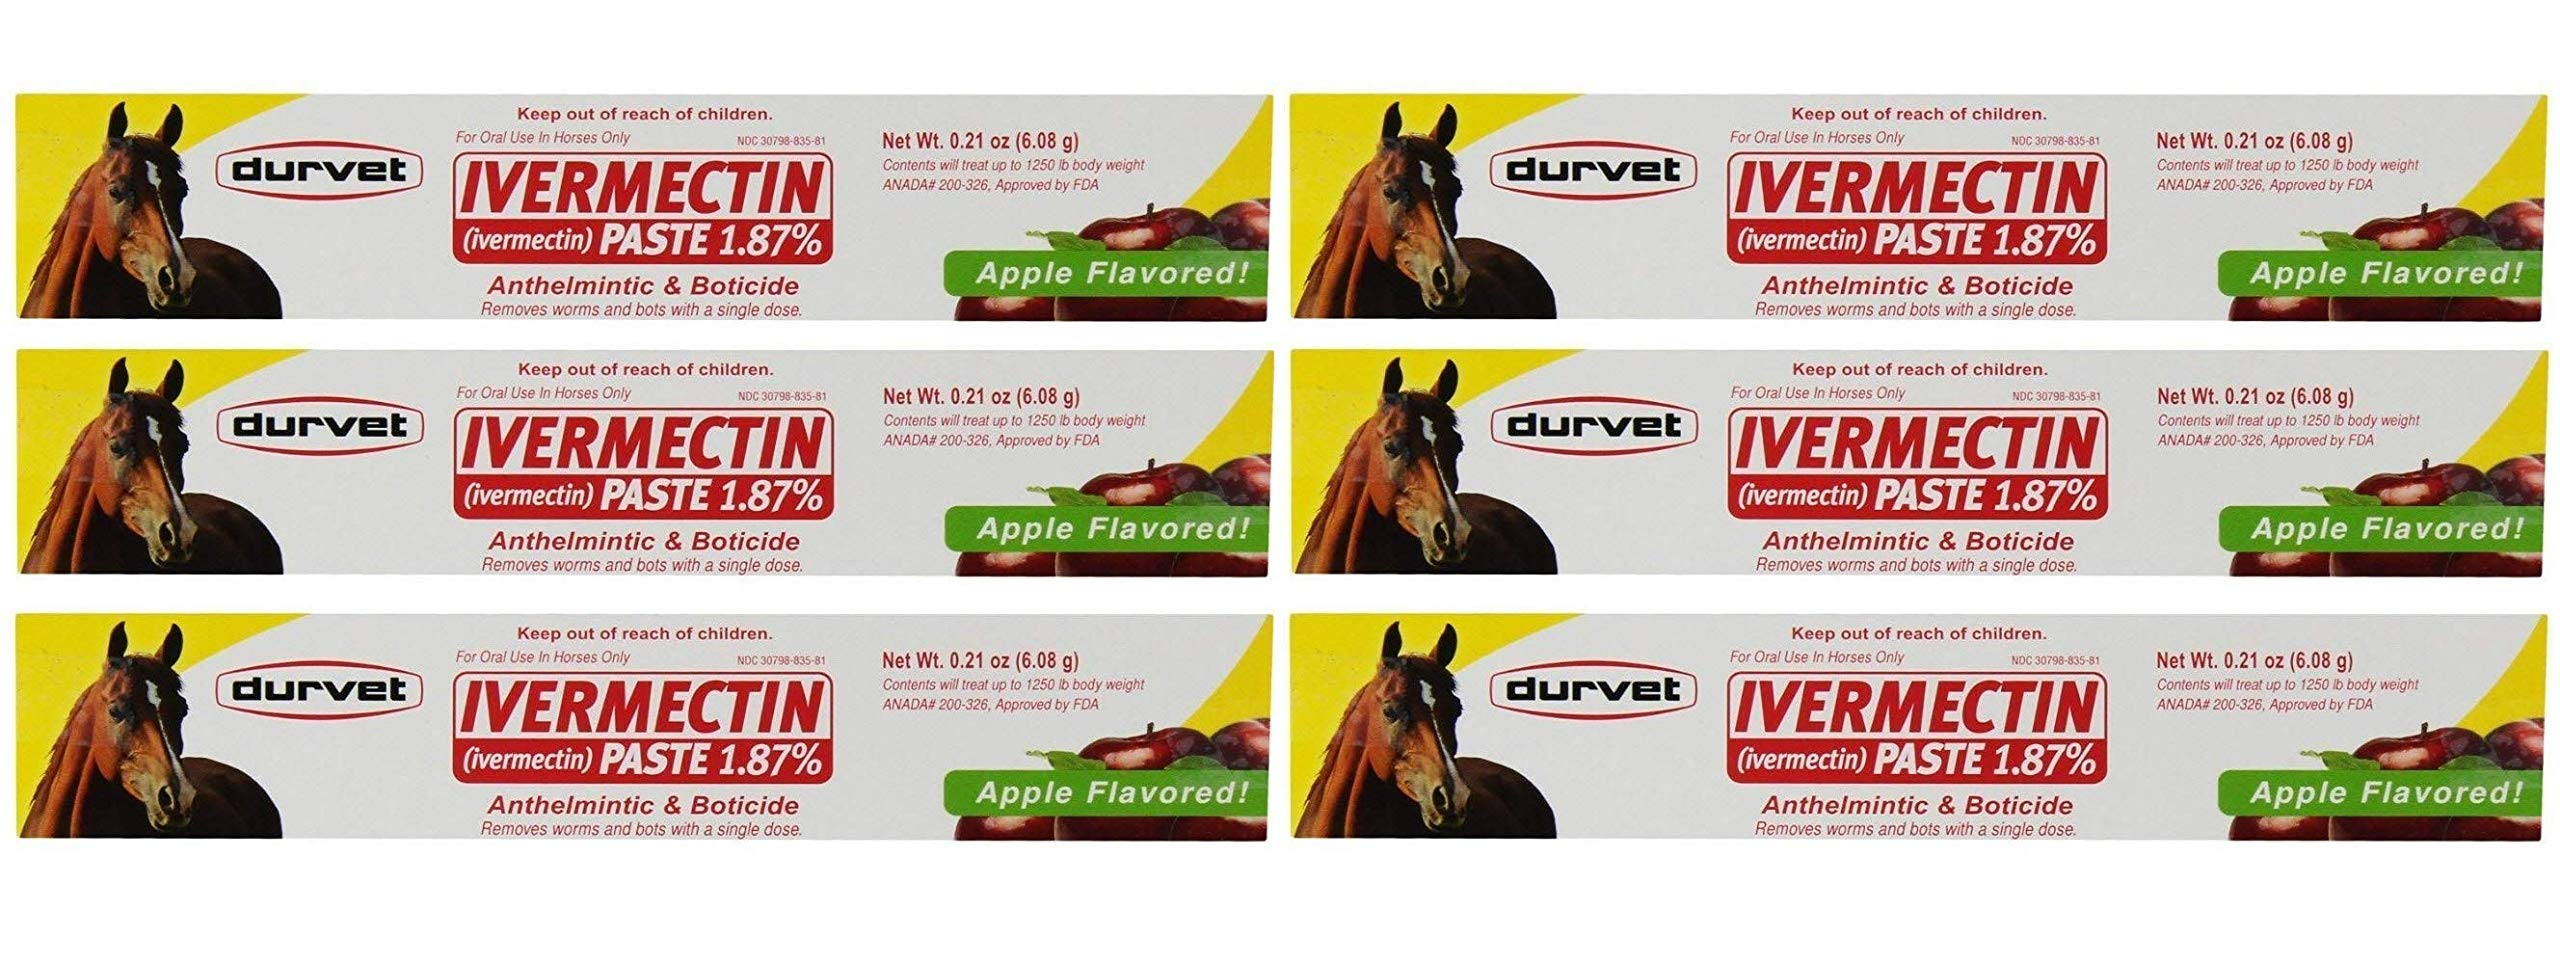 Durvet Ivermectin Dewormer Paste for Horses, 6 Doses, 0.21 oz by Durvet